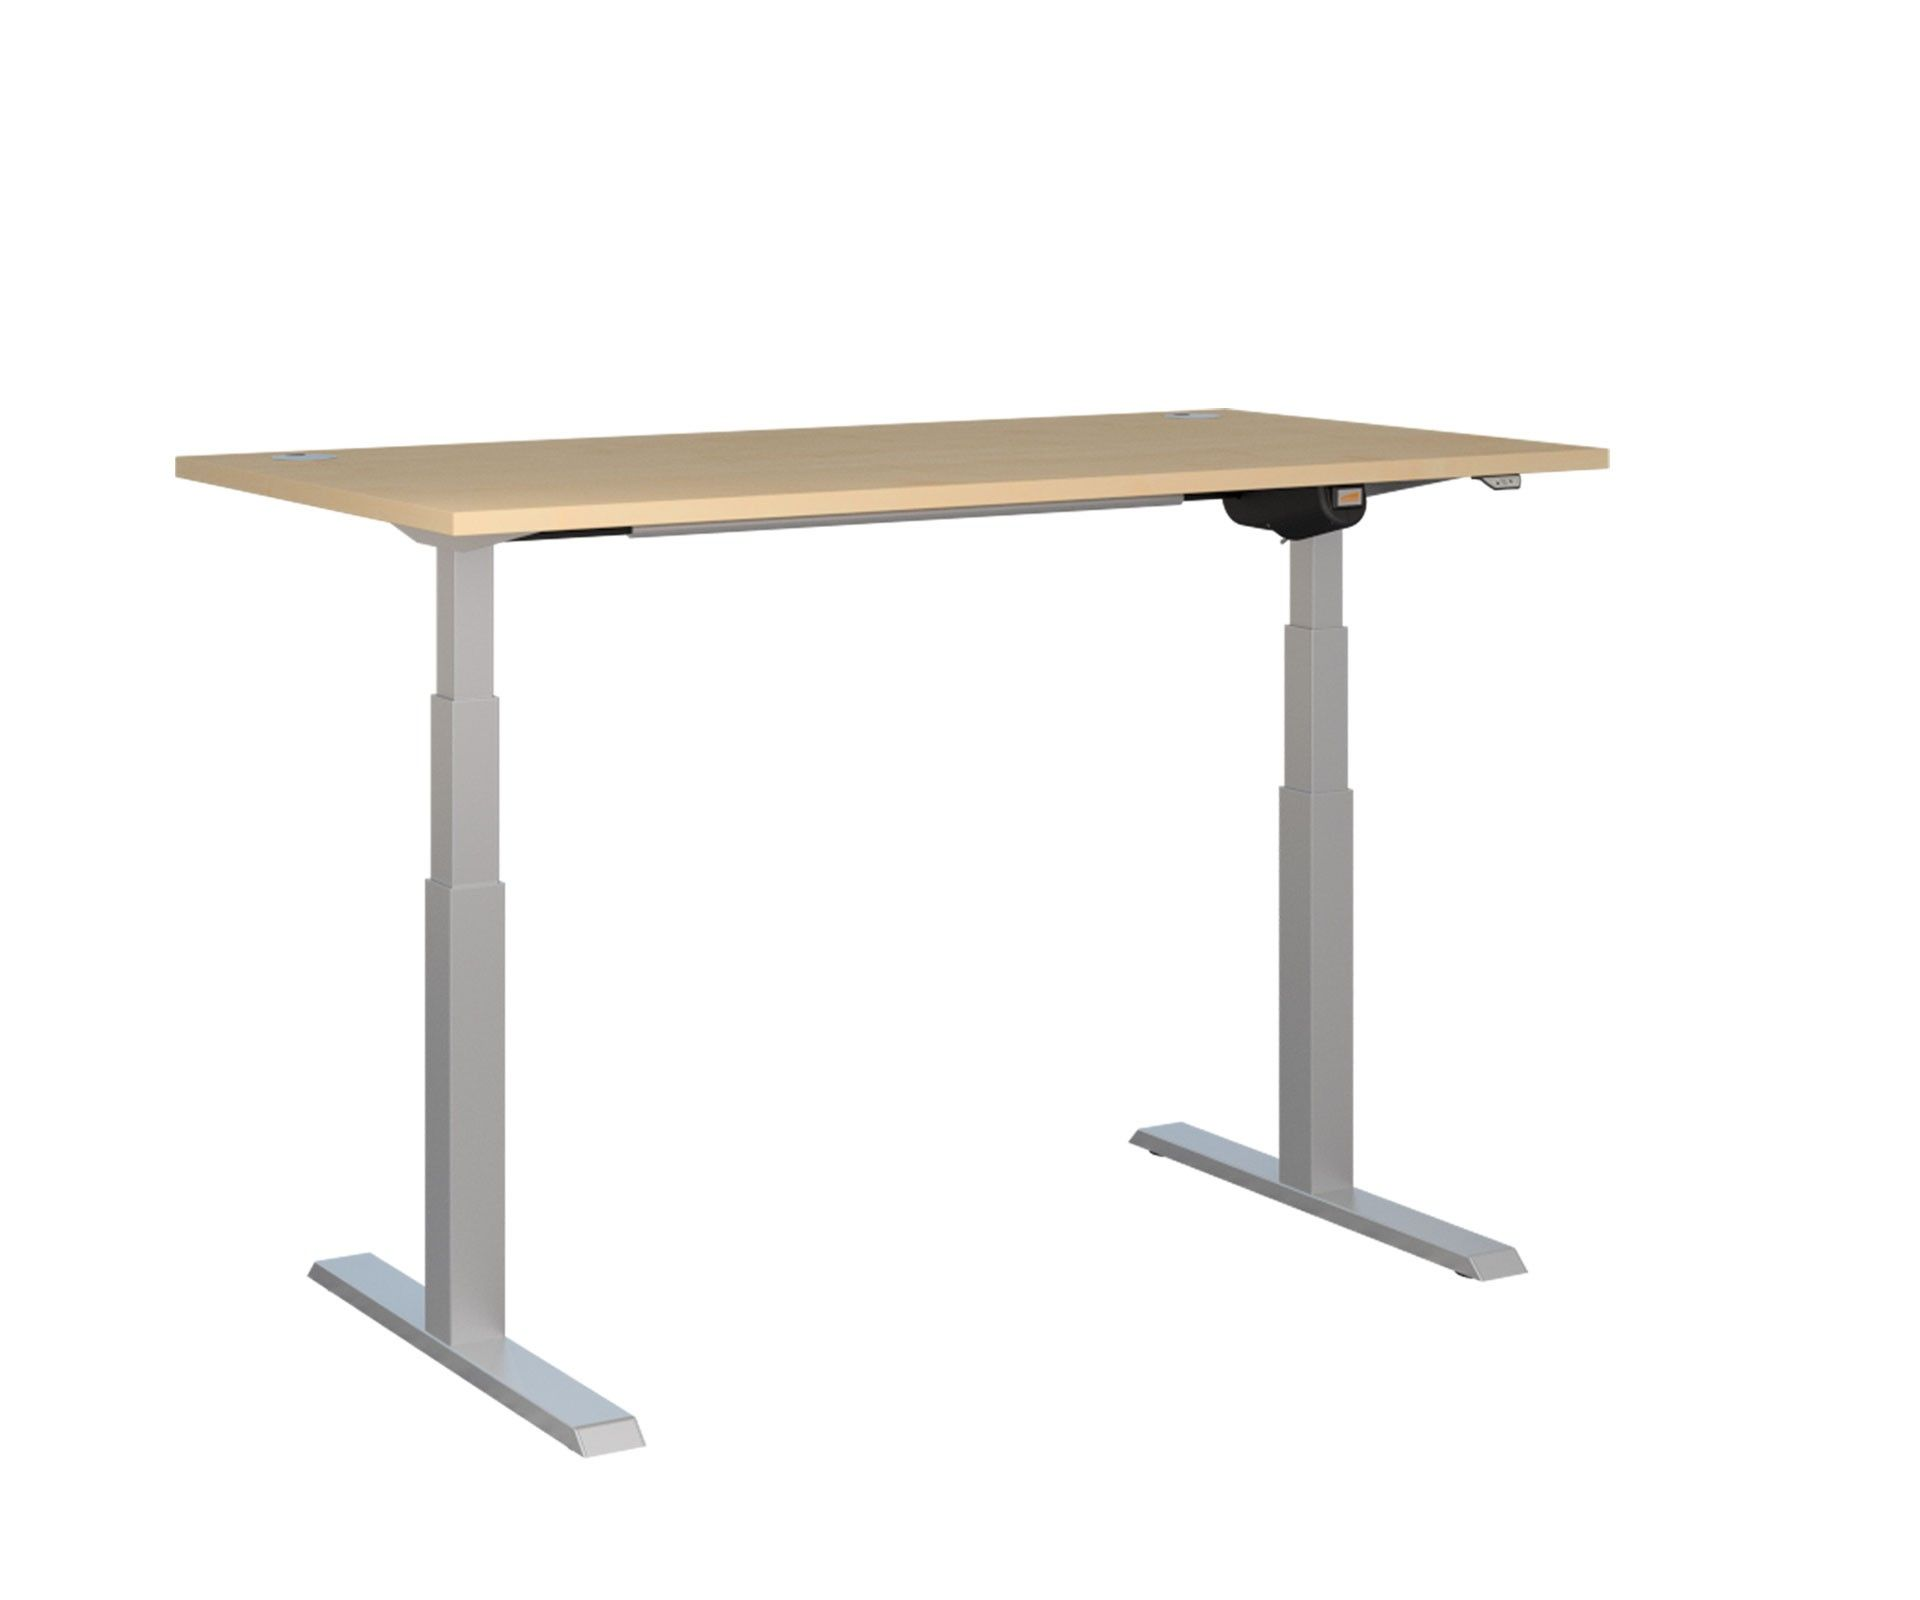 Captivating Unite Electric Height Adjustable Desk   Silver Frame |NEXT DAY DELIVERY |  This Height Adjustable